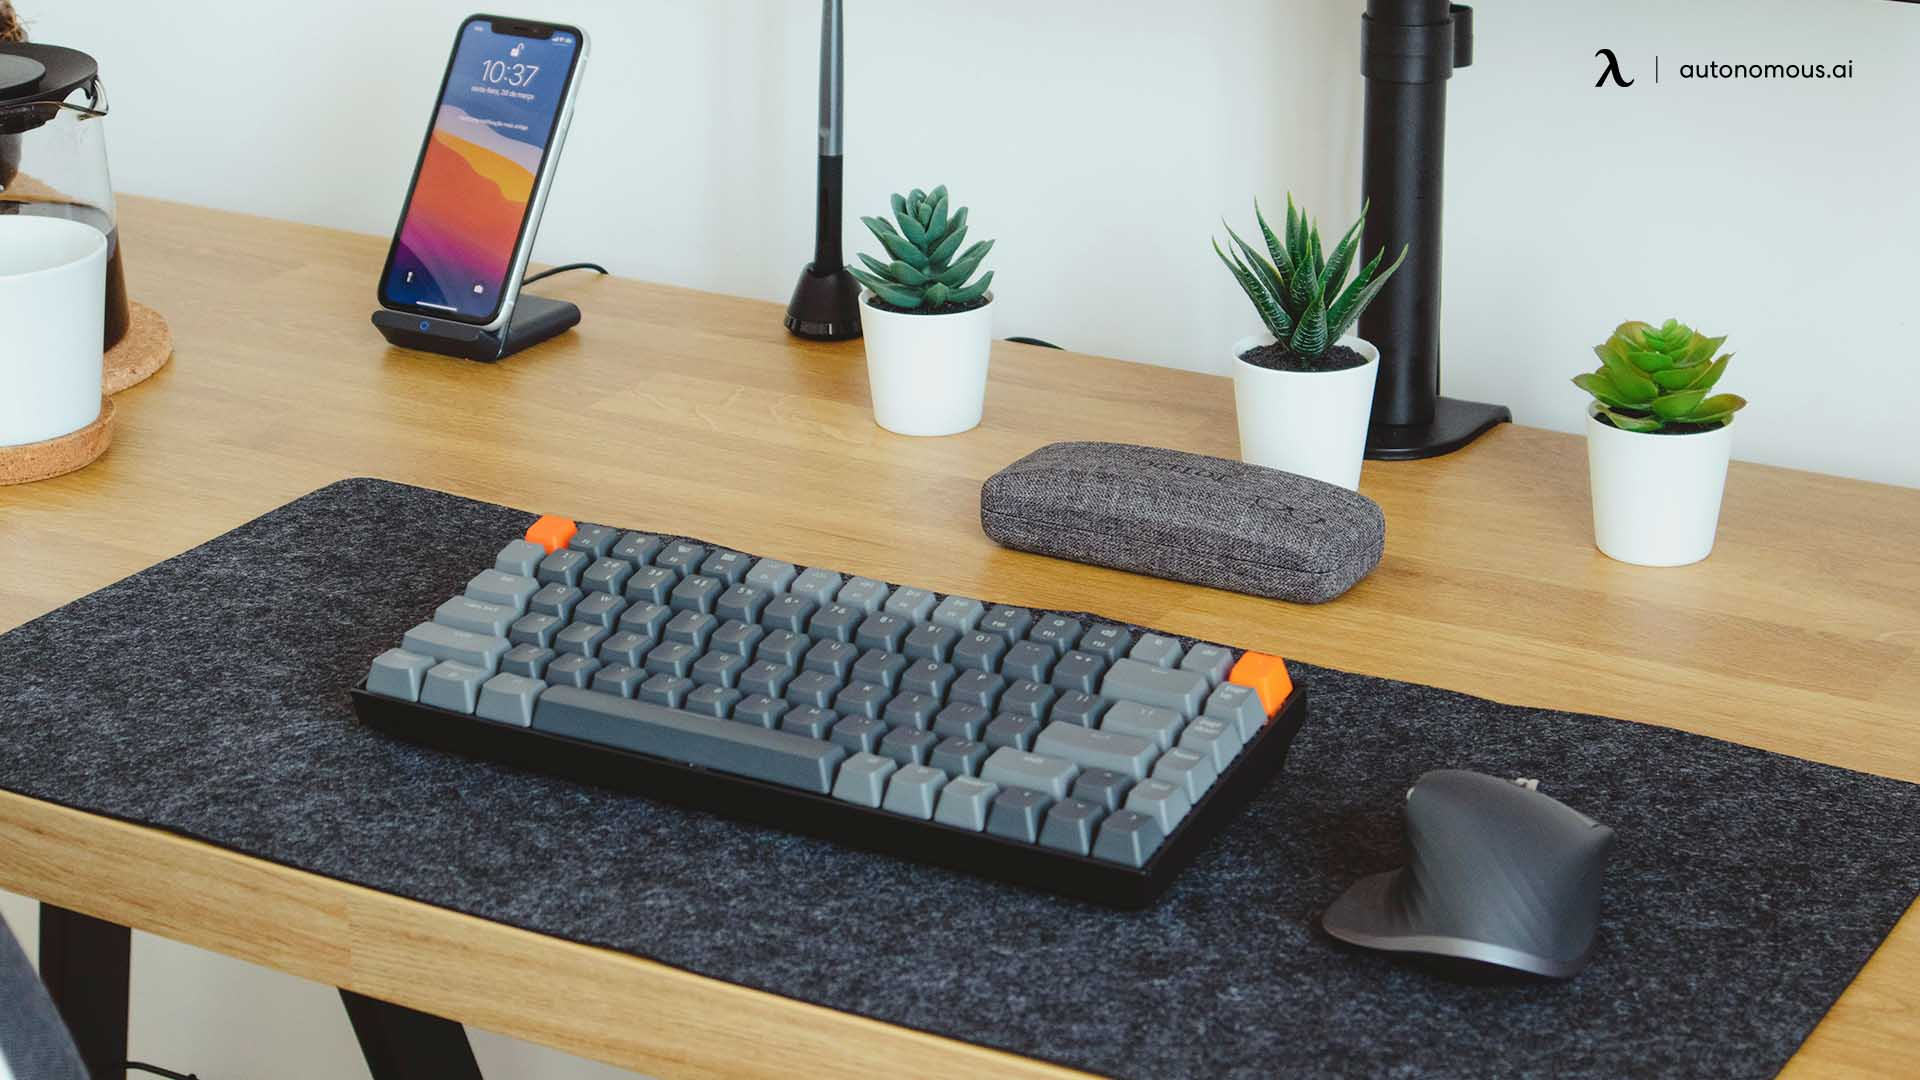 Bluetooth Mouse And Keyboard